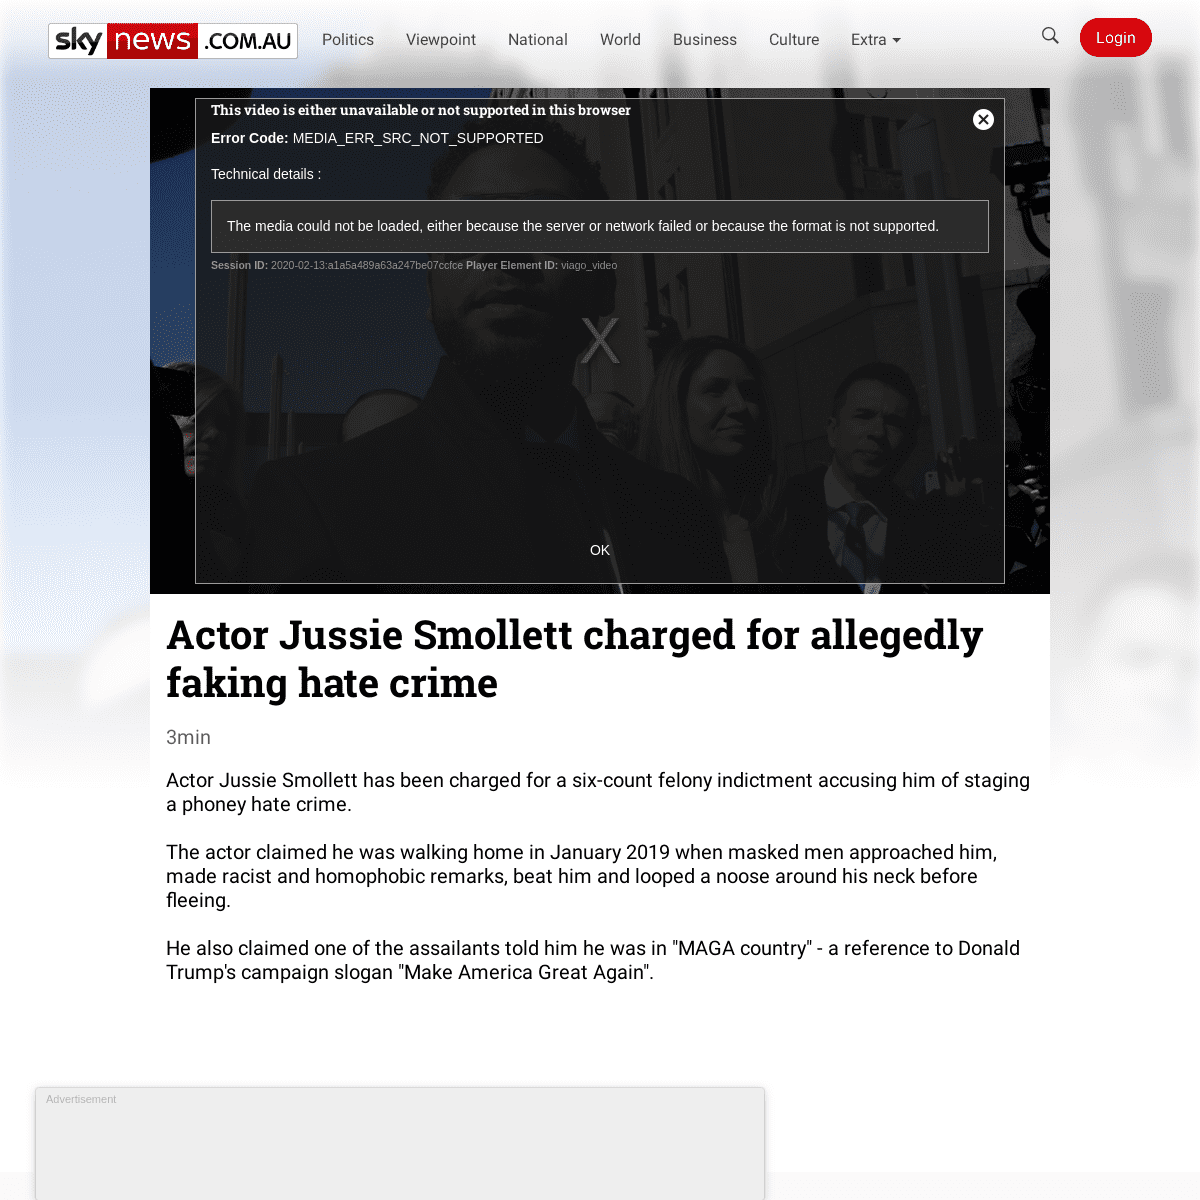 ArchiveBay.com - www.skynews.com.au/details/_6131804246001 - Actor Jussie Smollett charged for allegedly faking hate crime - Sky News Australia